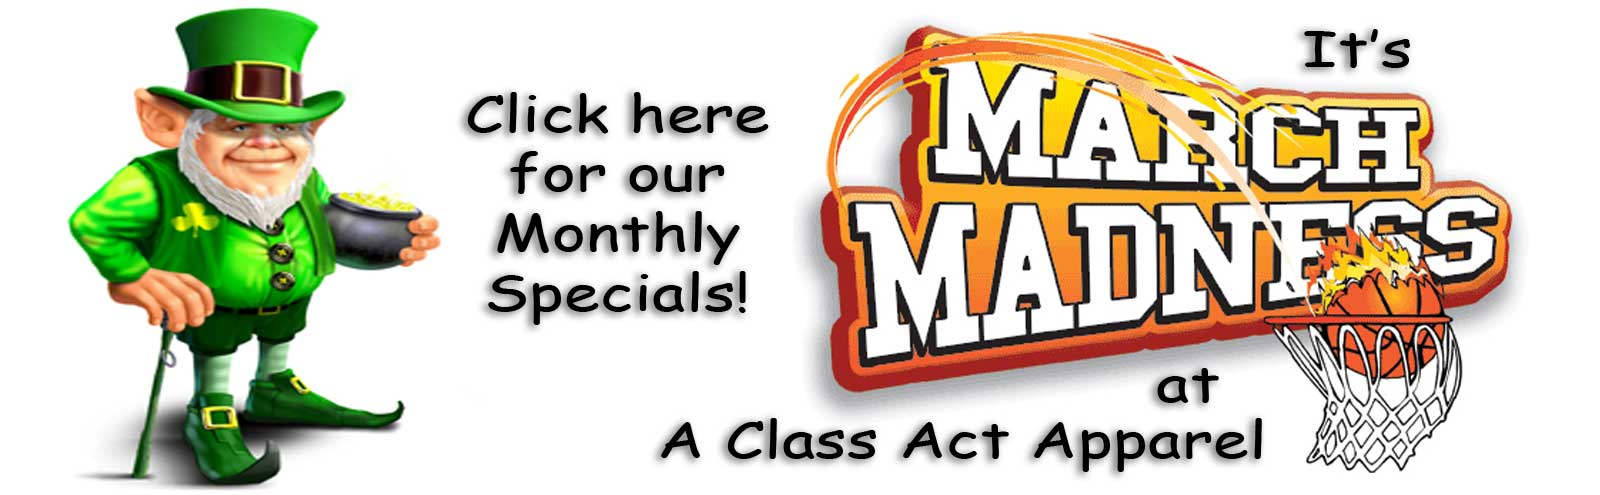 Click Here For Our Monthly Specials!